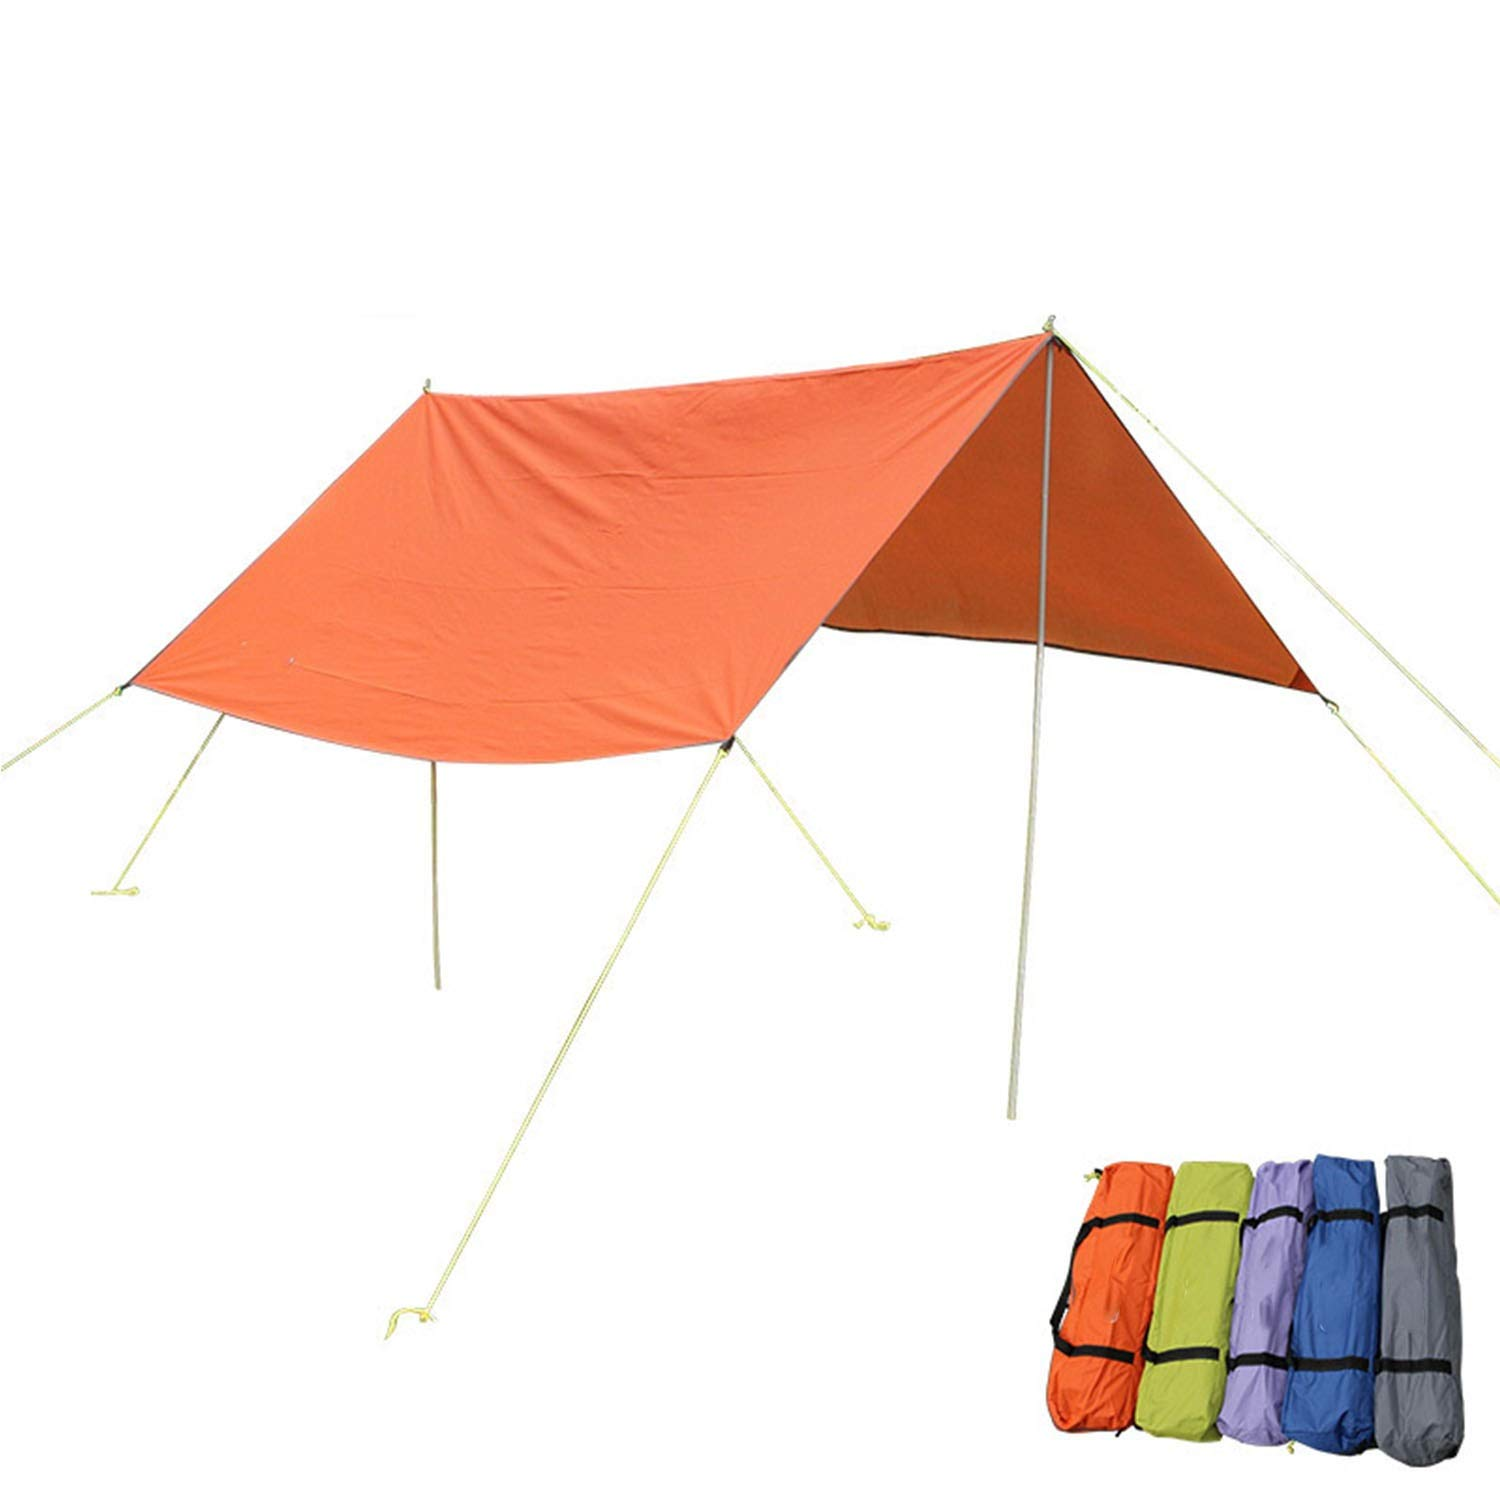 YOZOOE Canopy/Sunscreen/Pergola/Sunshade, Multi-Function Outdoor Canopy, Outdoor Camping Tent Cover, Portable Camping Gear, Five Colors Random Delivery by YOZOOE